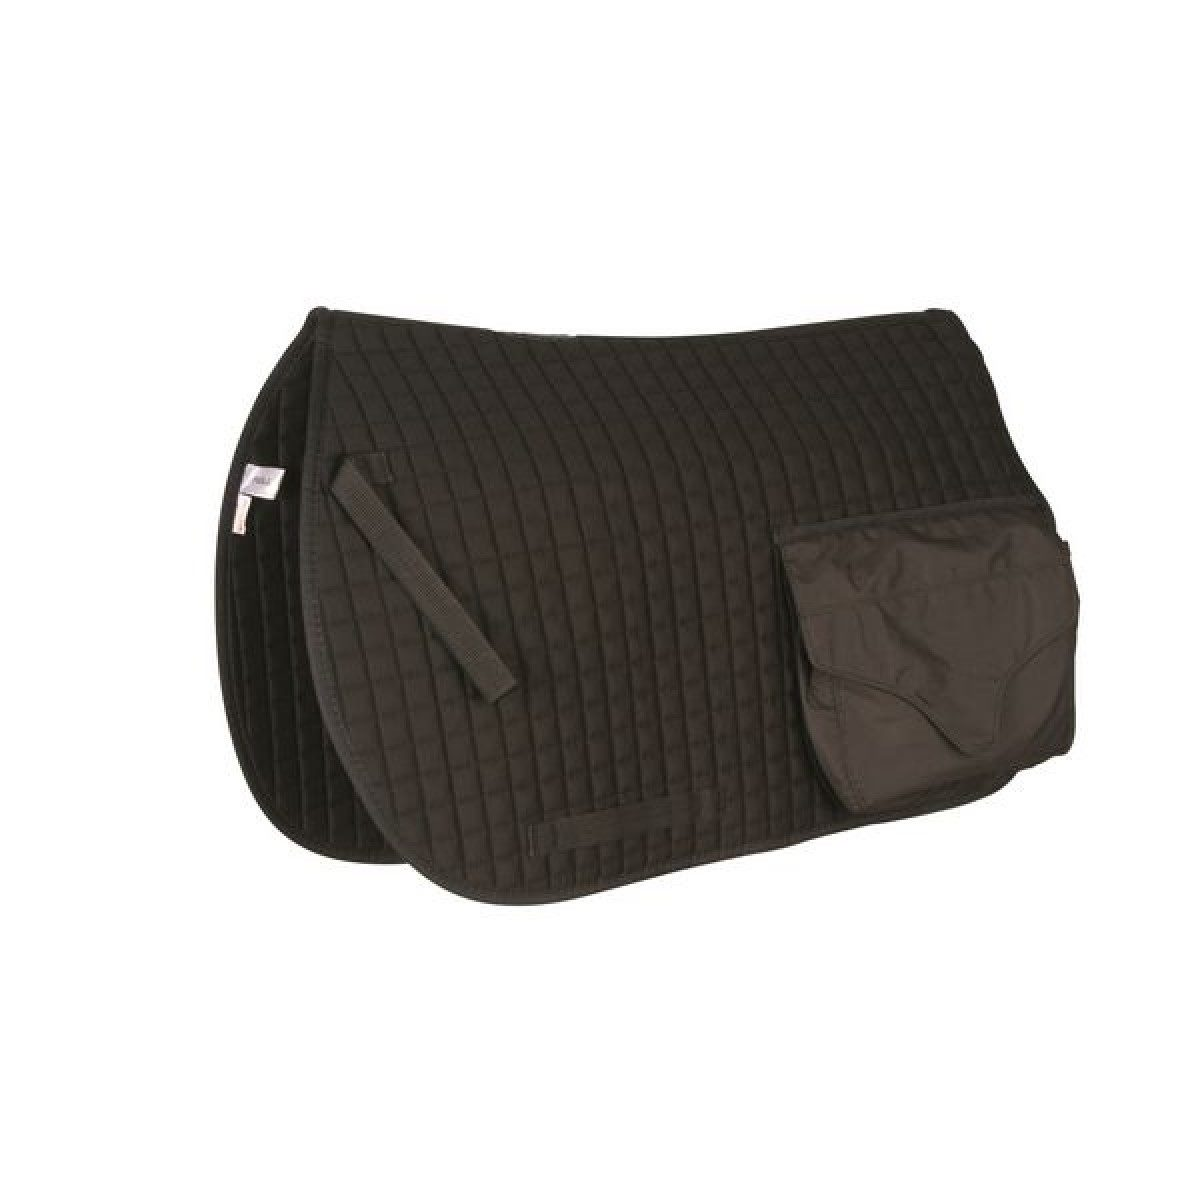 Roma Cotton Saddle Pad c/w Pockets